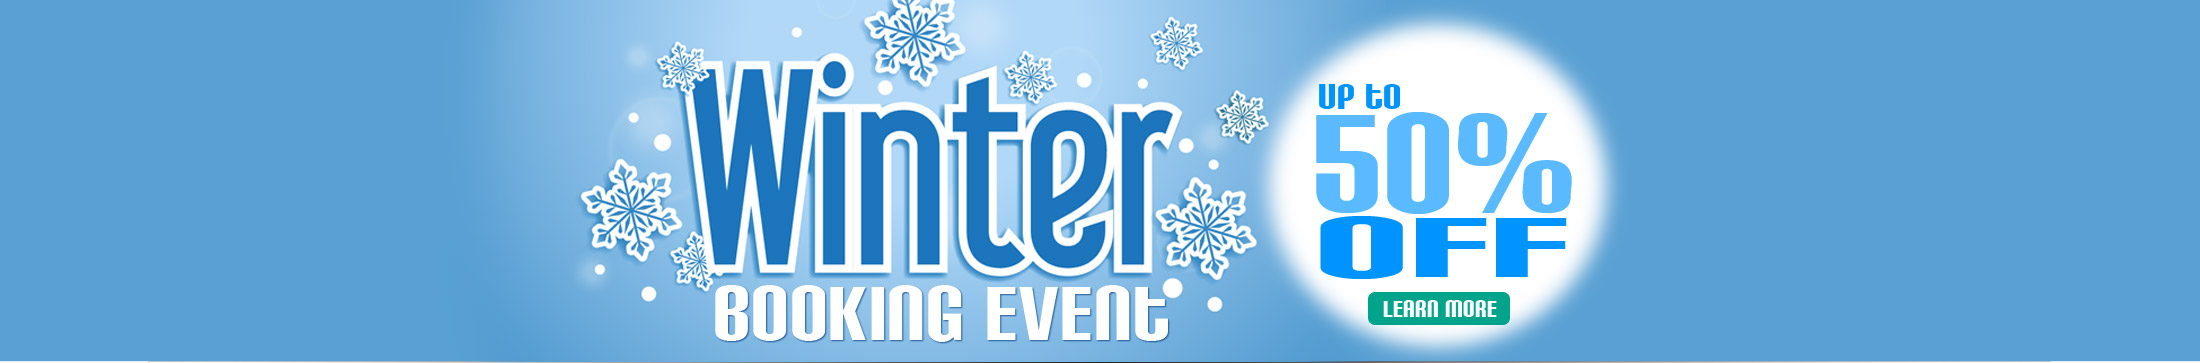 swgg-winter-banner